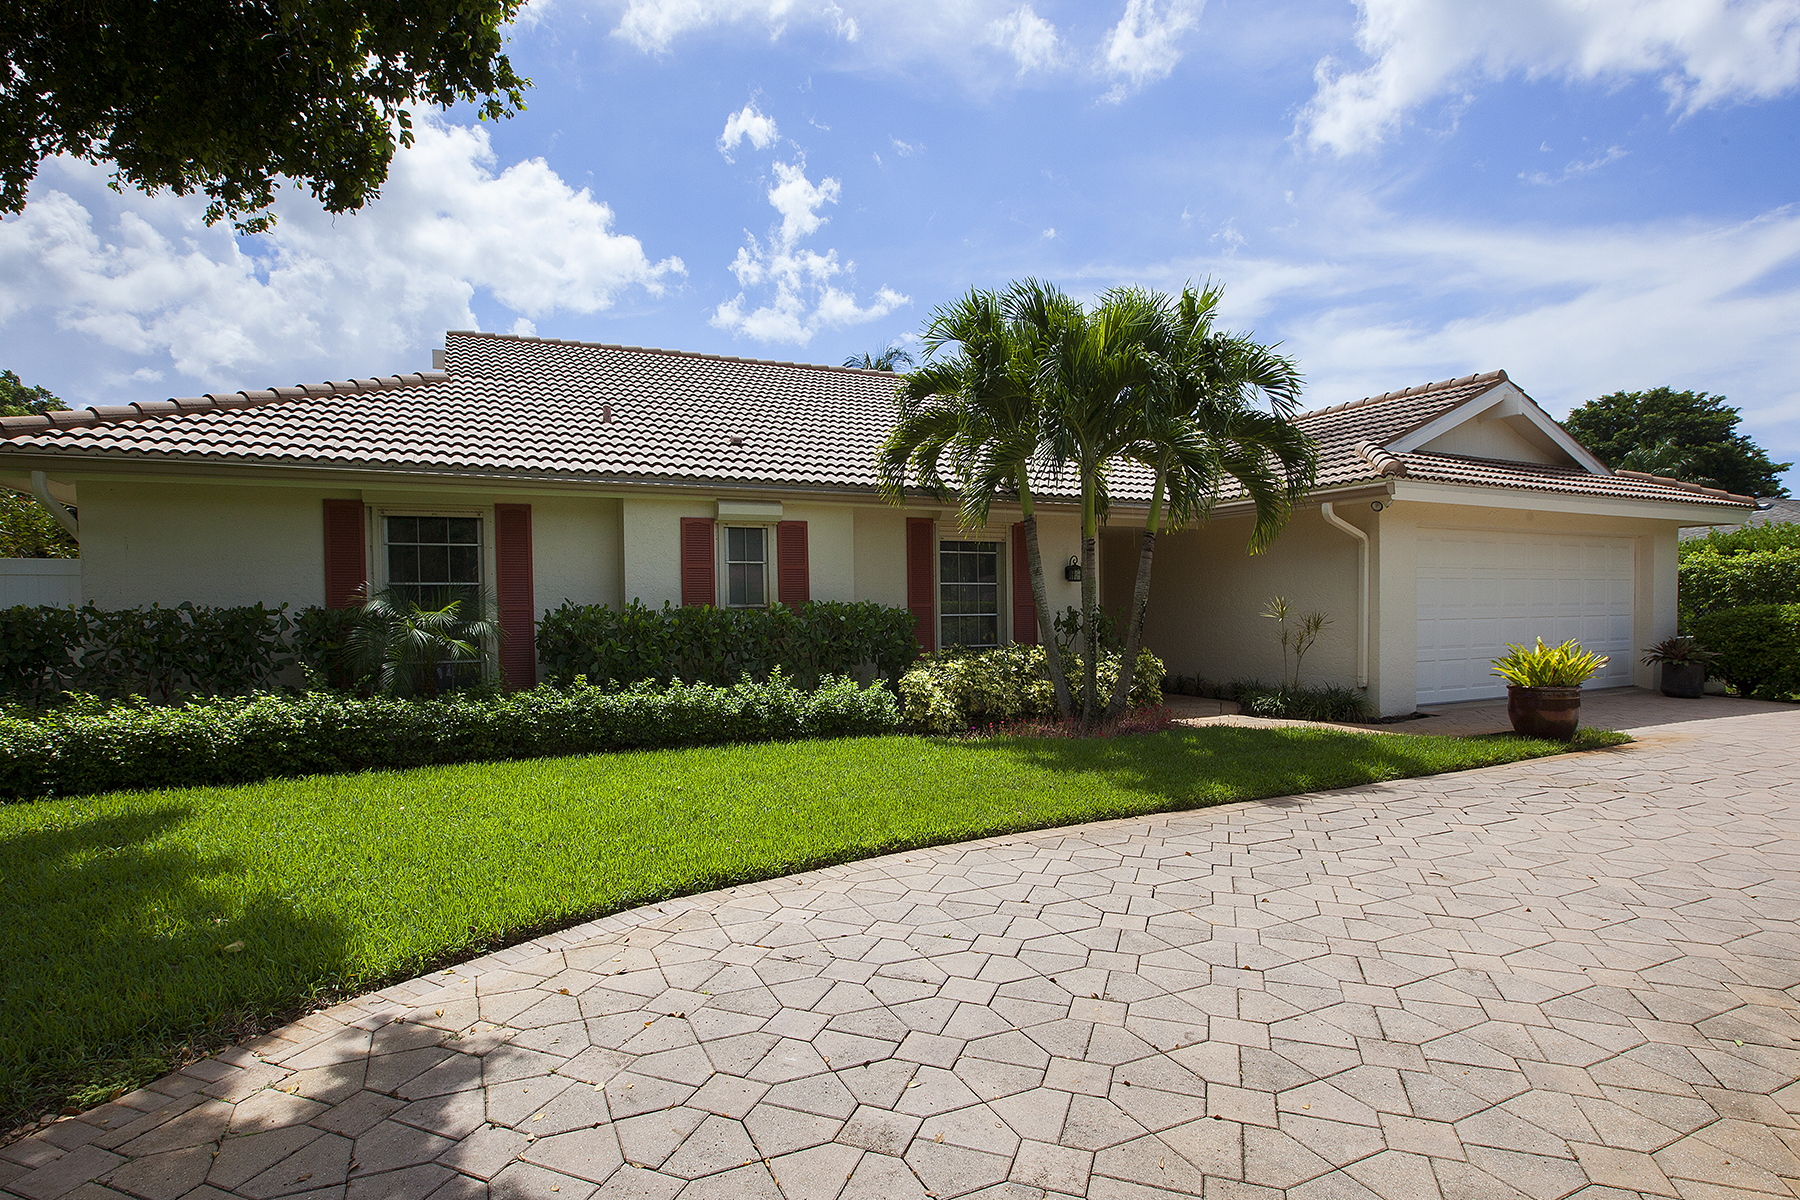 Property For Sale at 720 Binnacle Dr , Naples, FL 34103